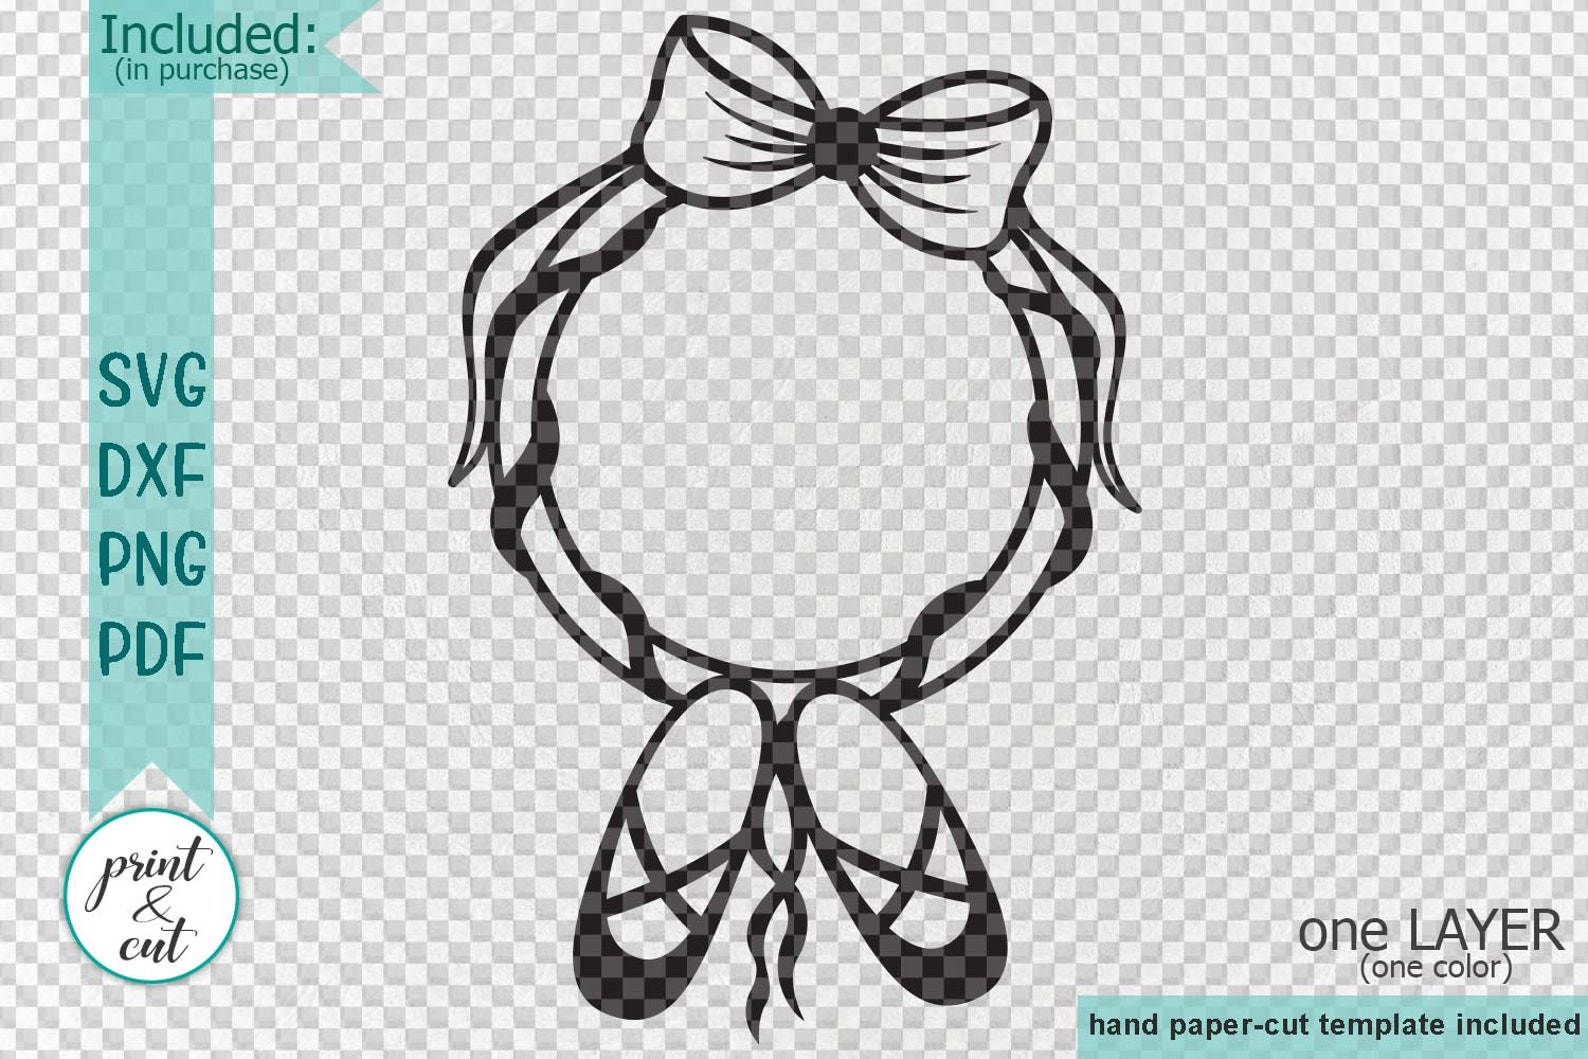 ballet shoes svg, ballerina svg, round monogram svg, frame for name, svg file, cut out, empty circle, dxf, pdf, for baby girl sv